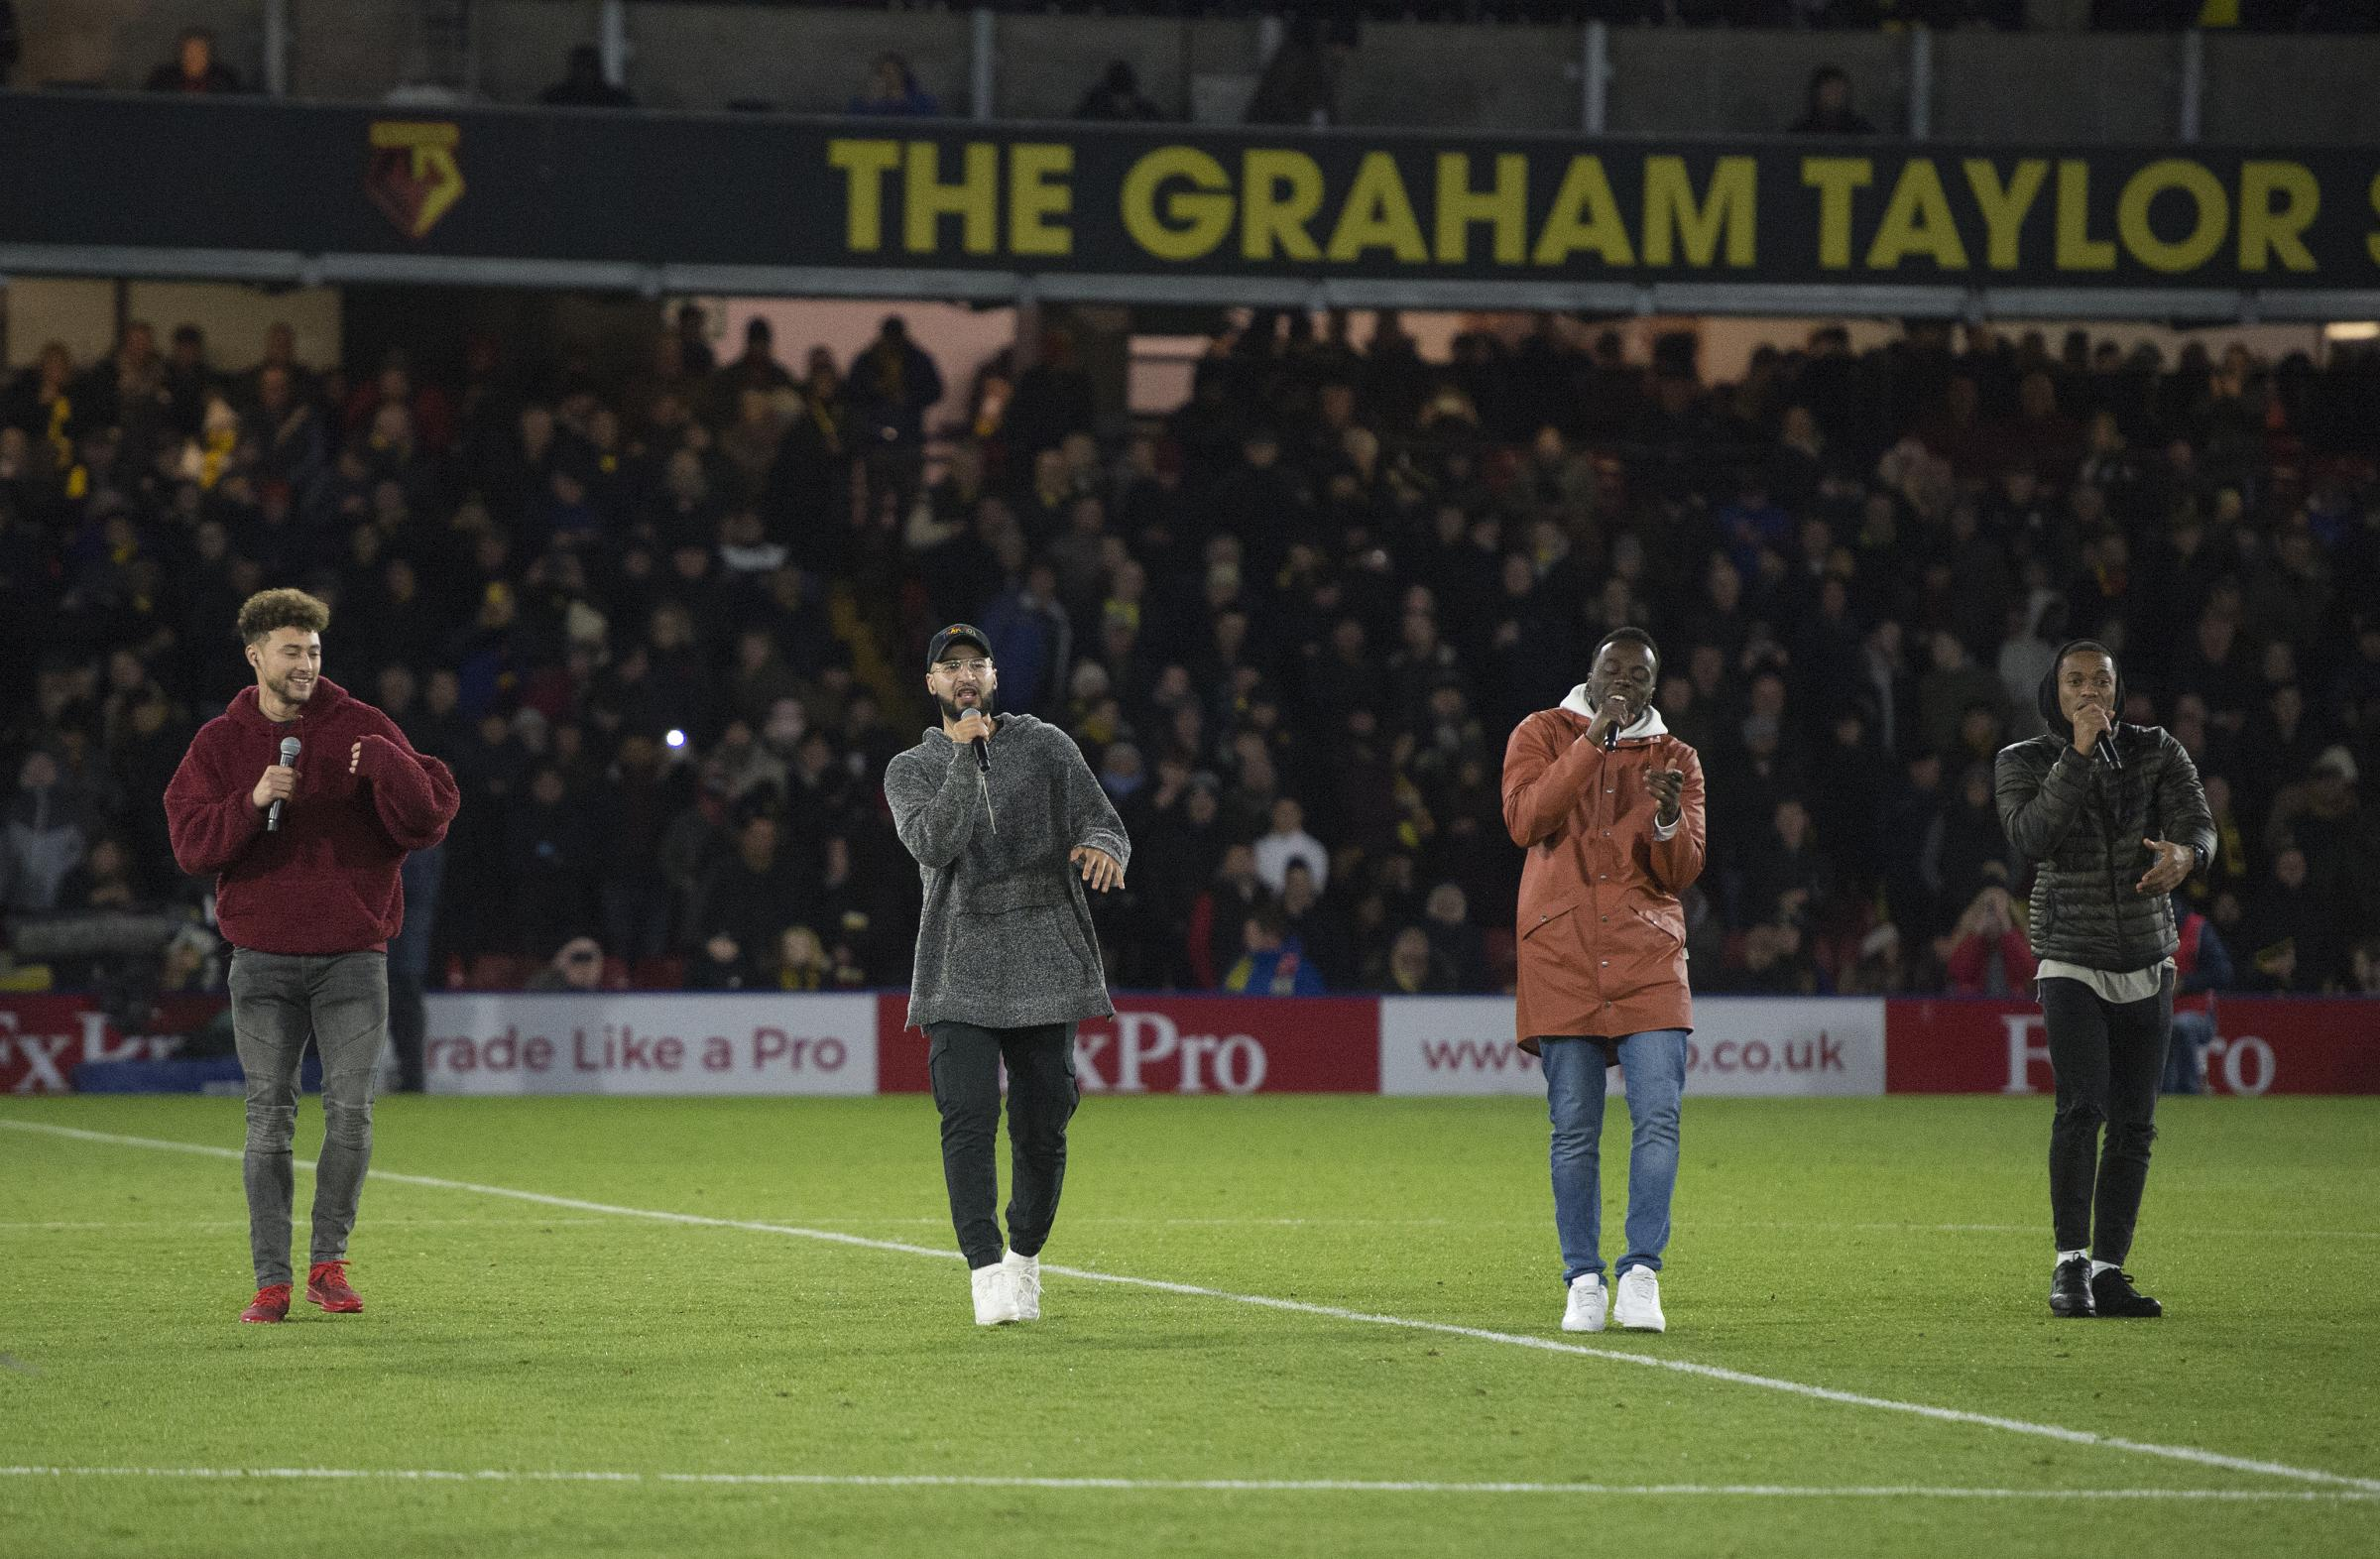 Rak-Su took to the Vicarage Road pitch at half-time during Watford's match against Manchester United (Photo: Alan Cozzi/Watford FC)